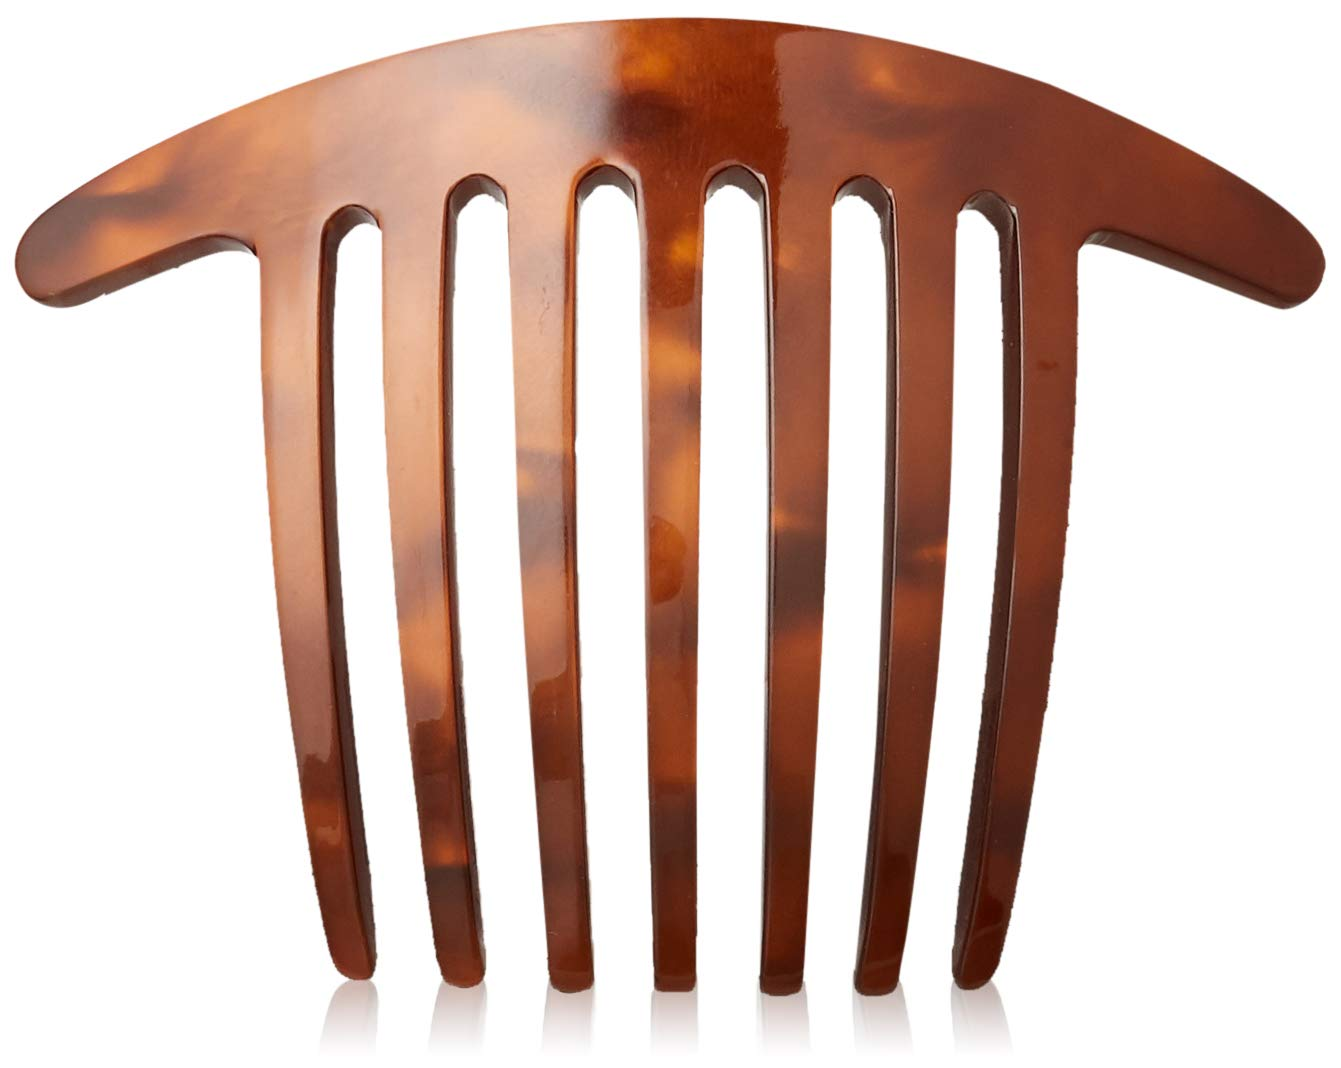 France Luxe Handmade French Twist Max 55% OFF Comb - Mocha Nacro Today's only